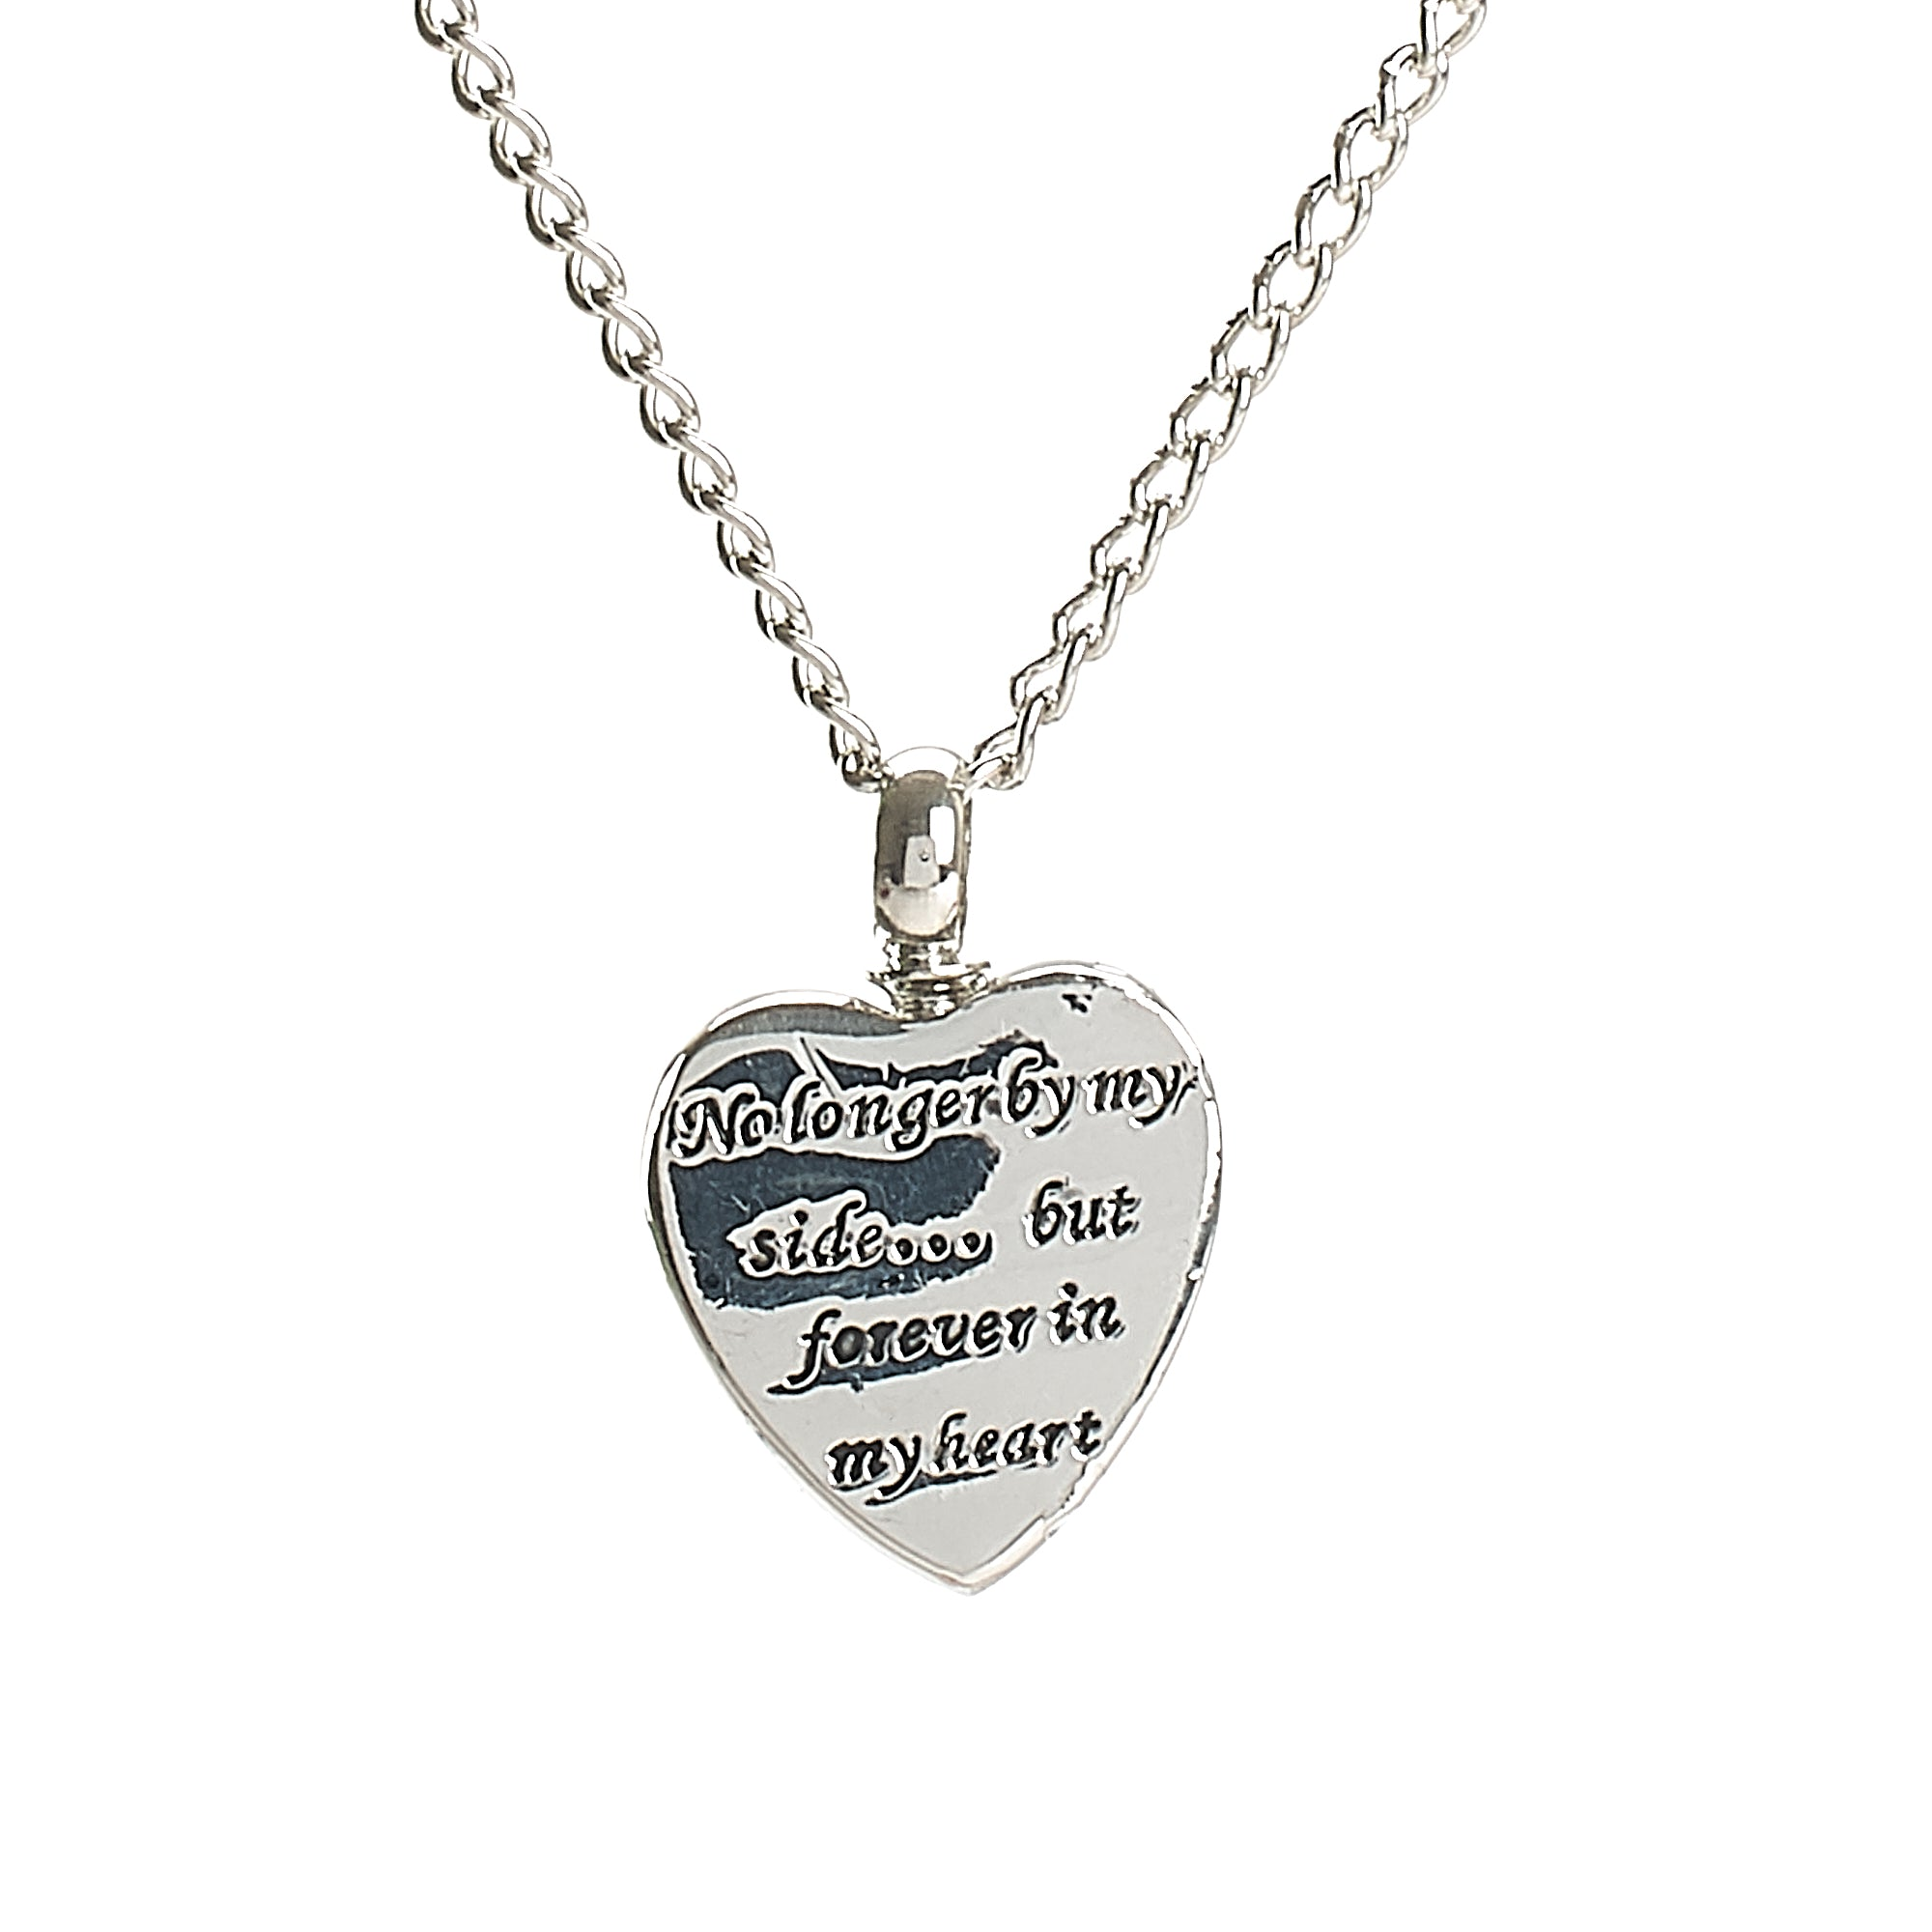 "Cremation Pendant - Silver Heart ""No Longer by my Side, Forever in my Heart"""